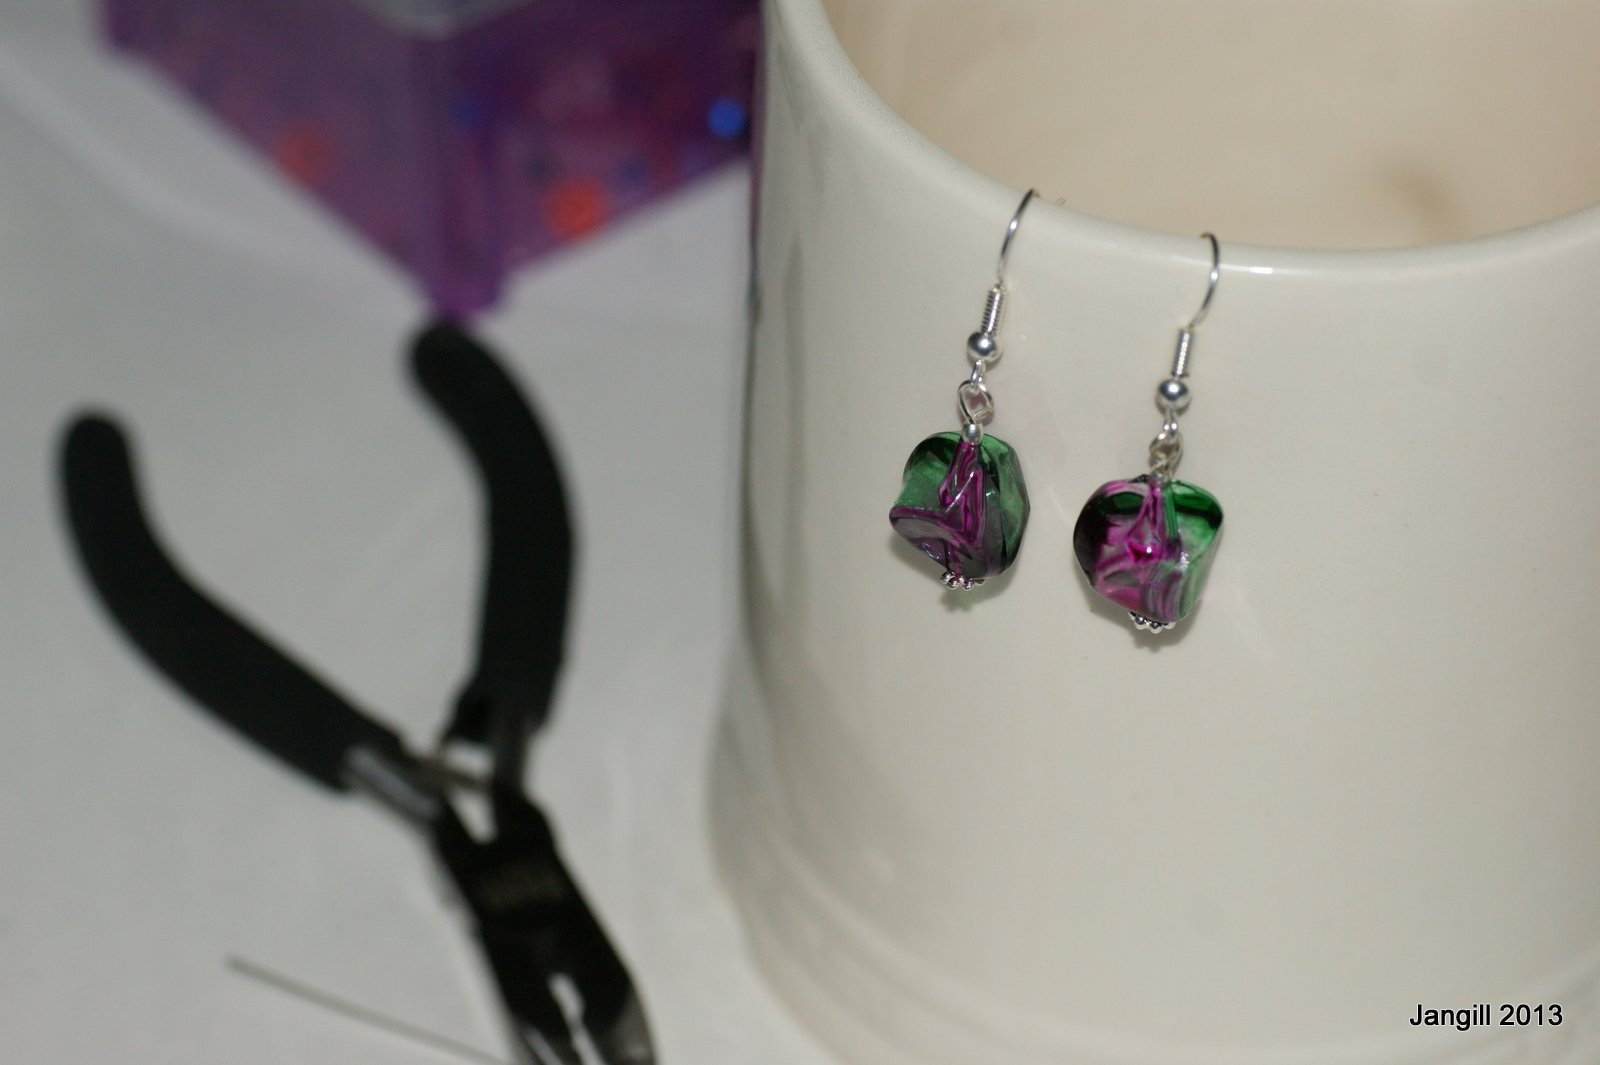 how to make earrings that go up your ear